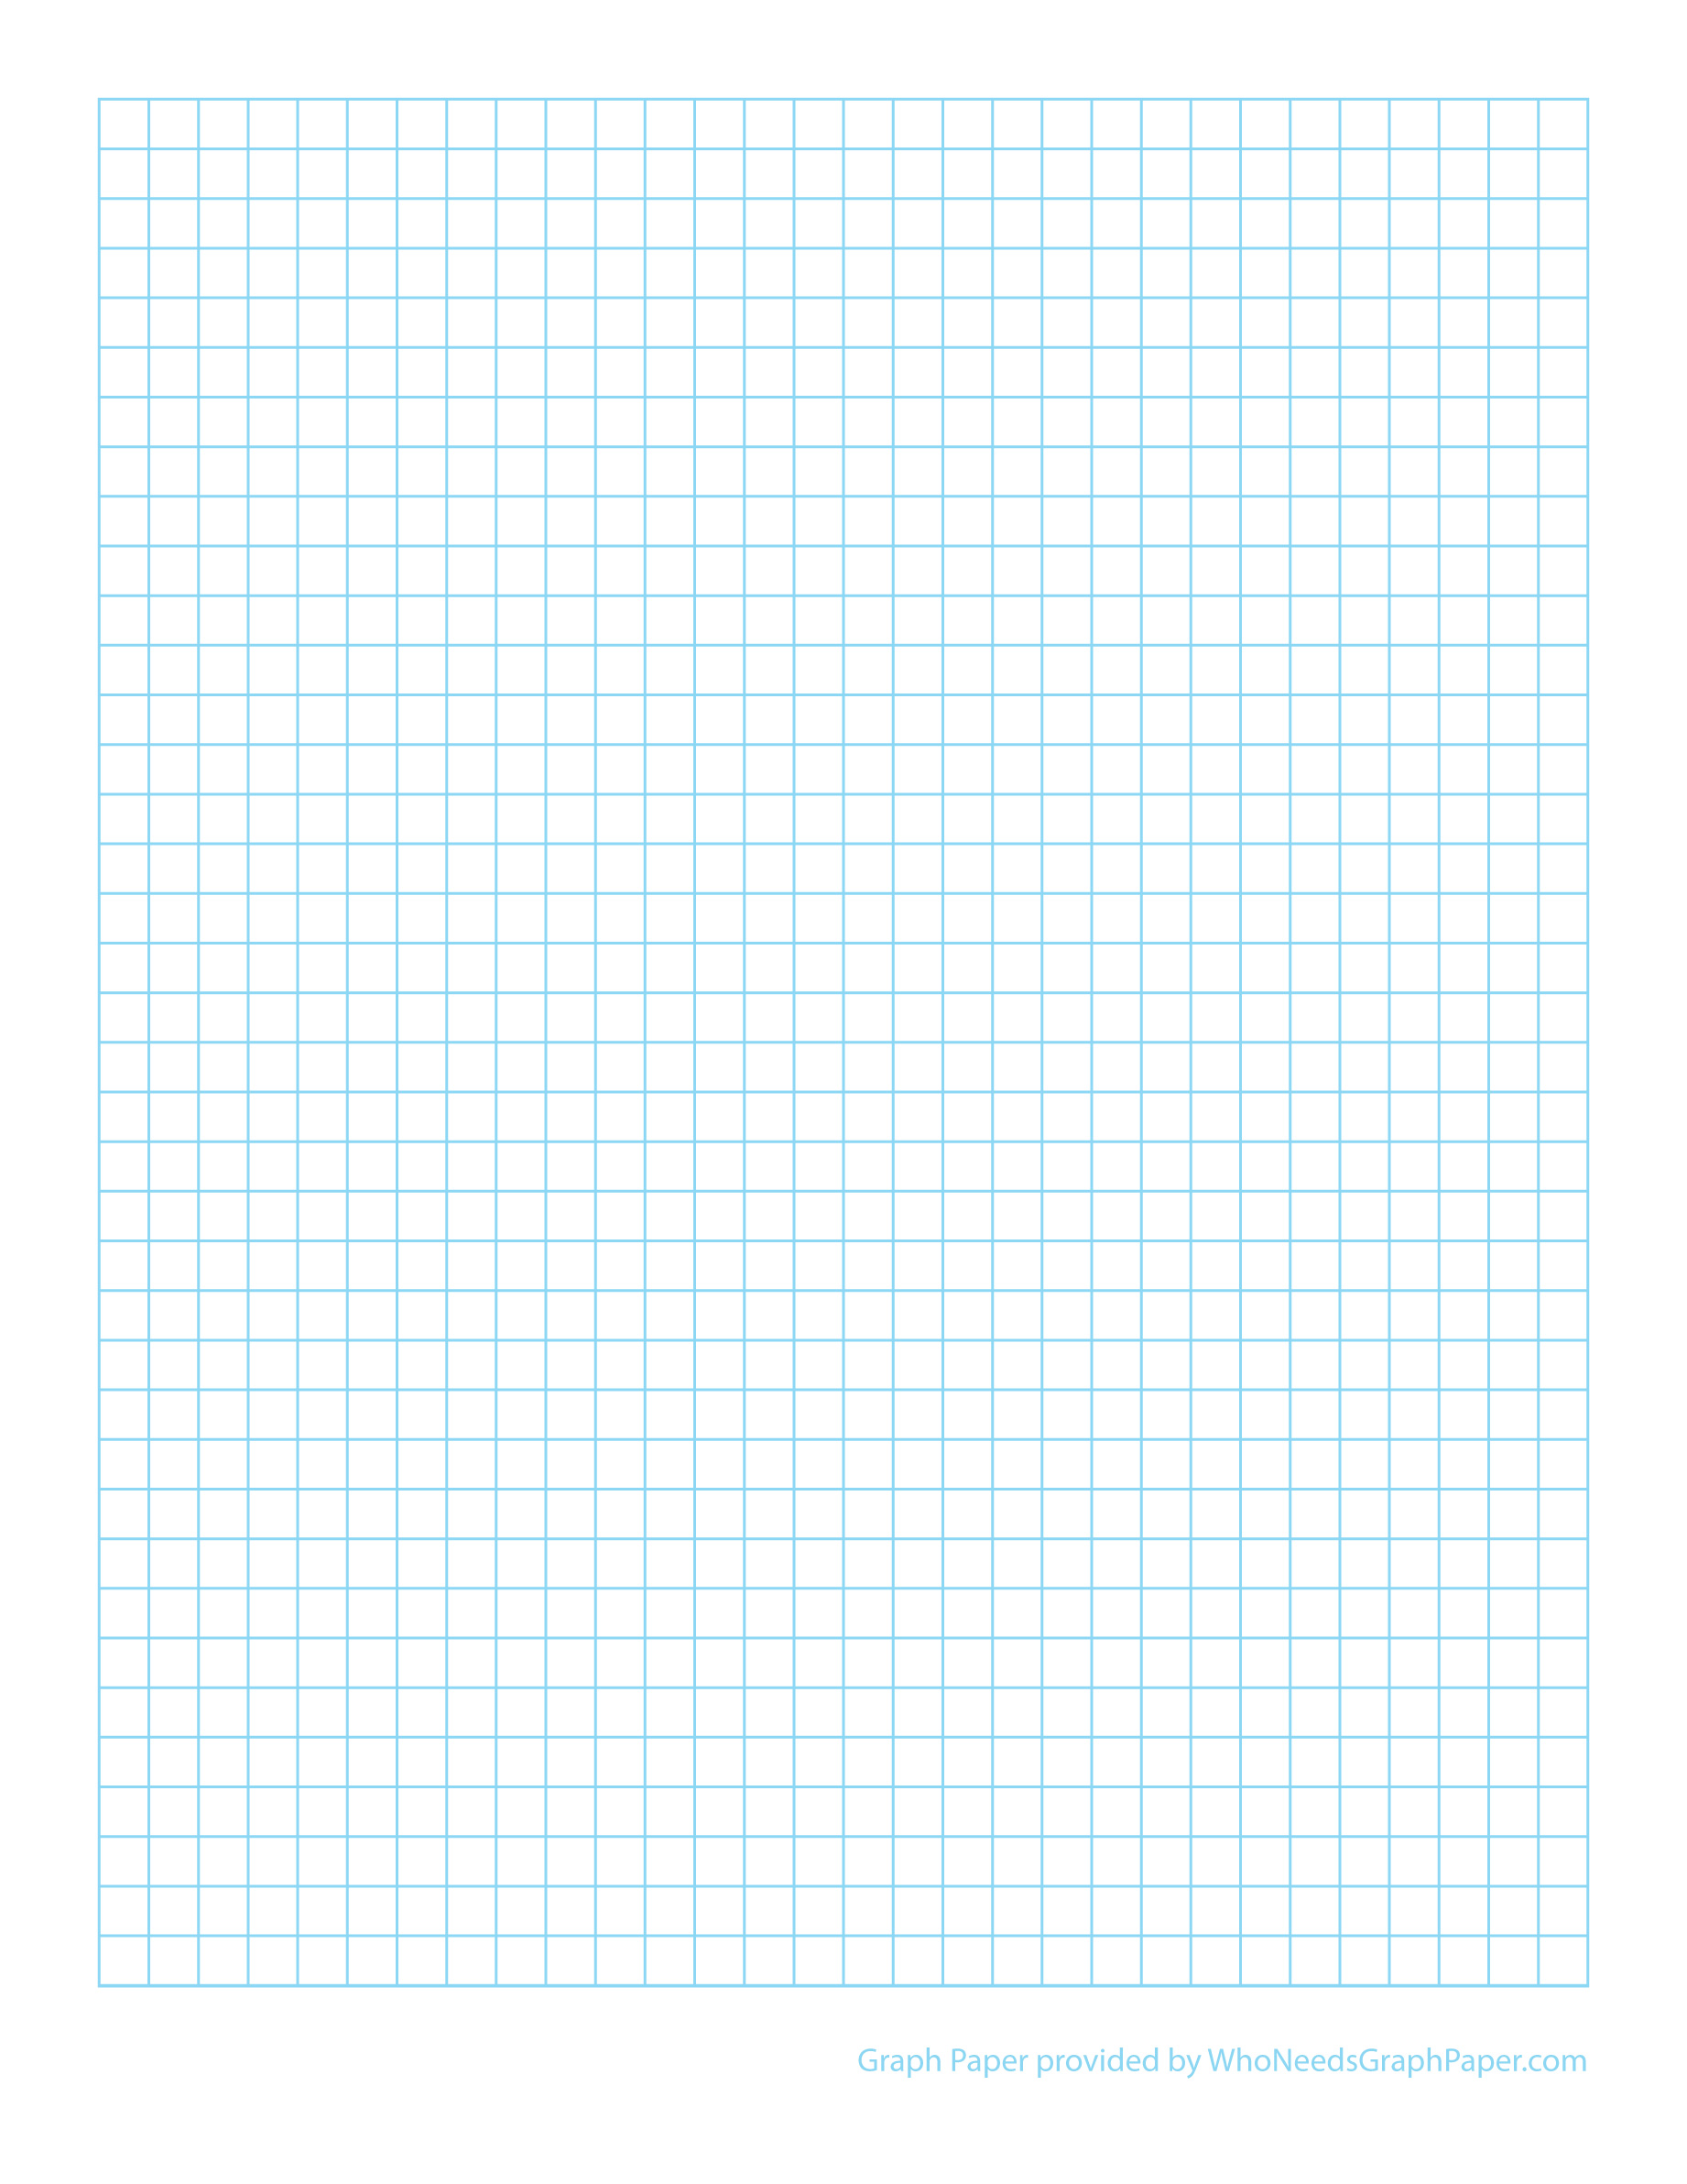 worksheet Free Printable Math Graph Paper graph paper